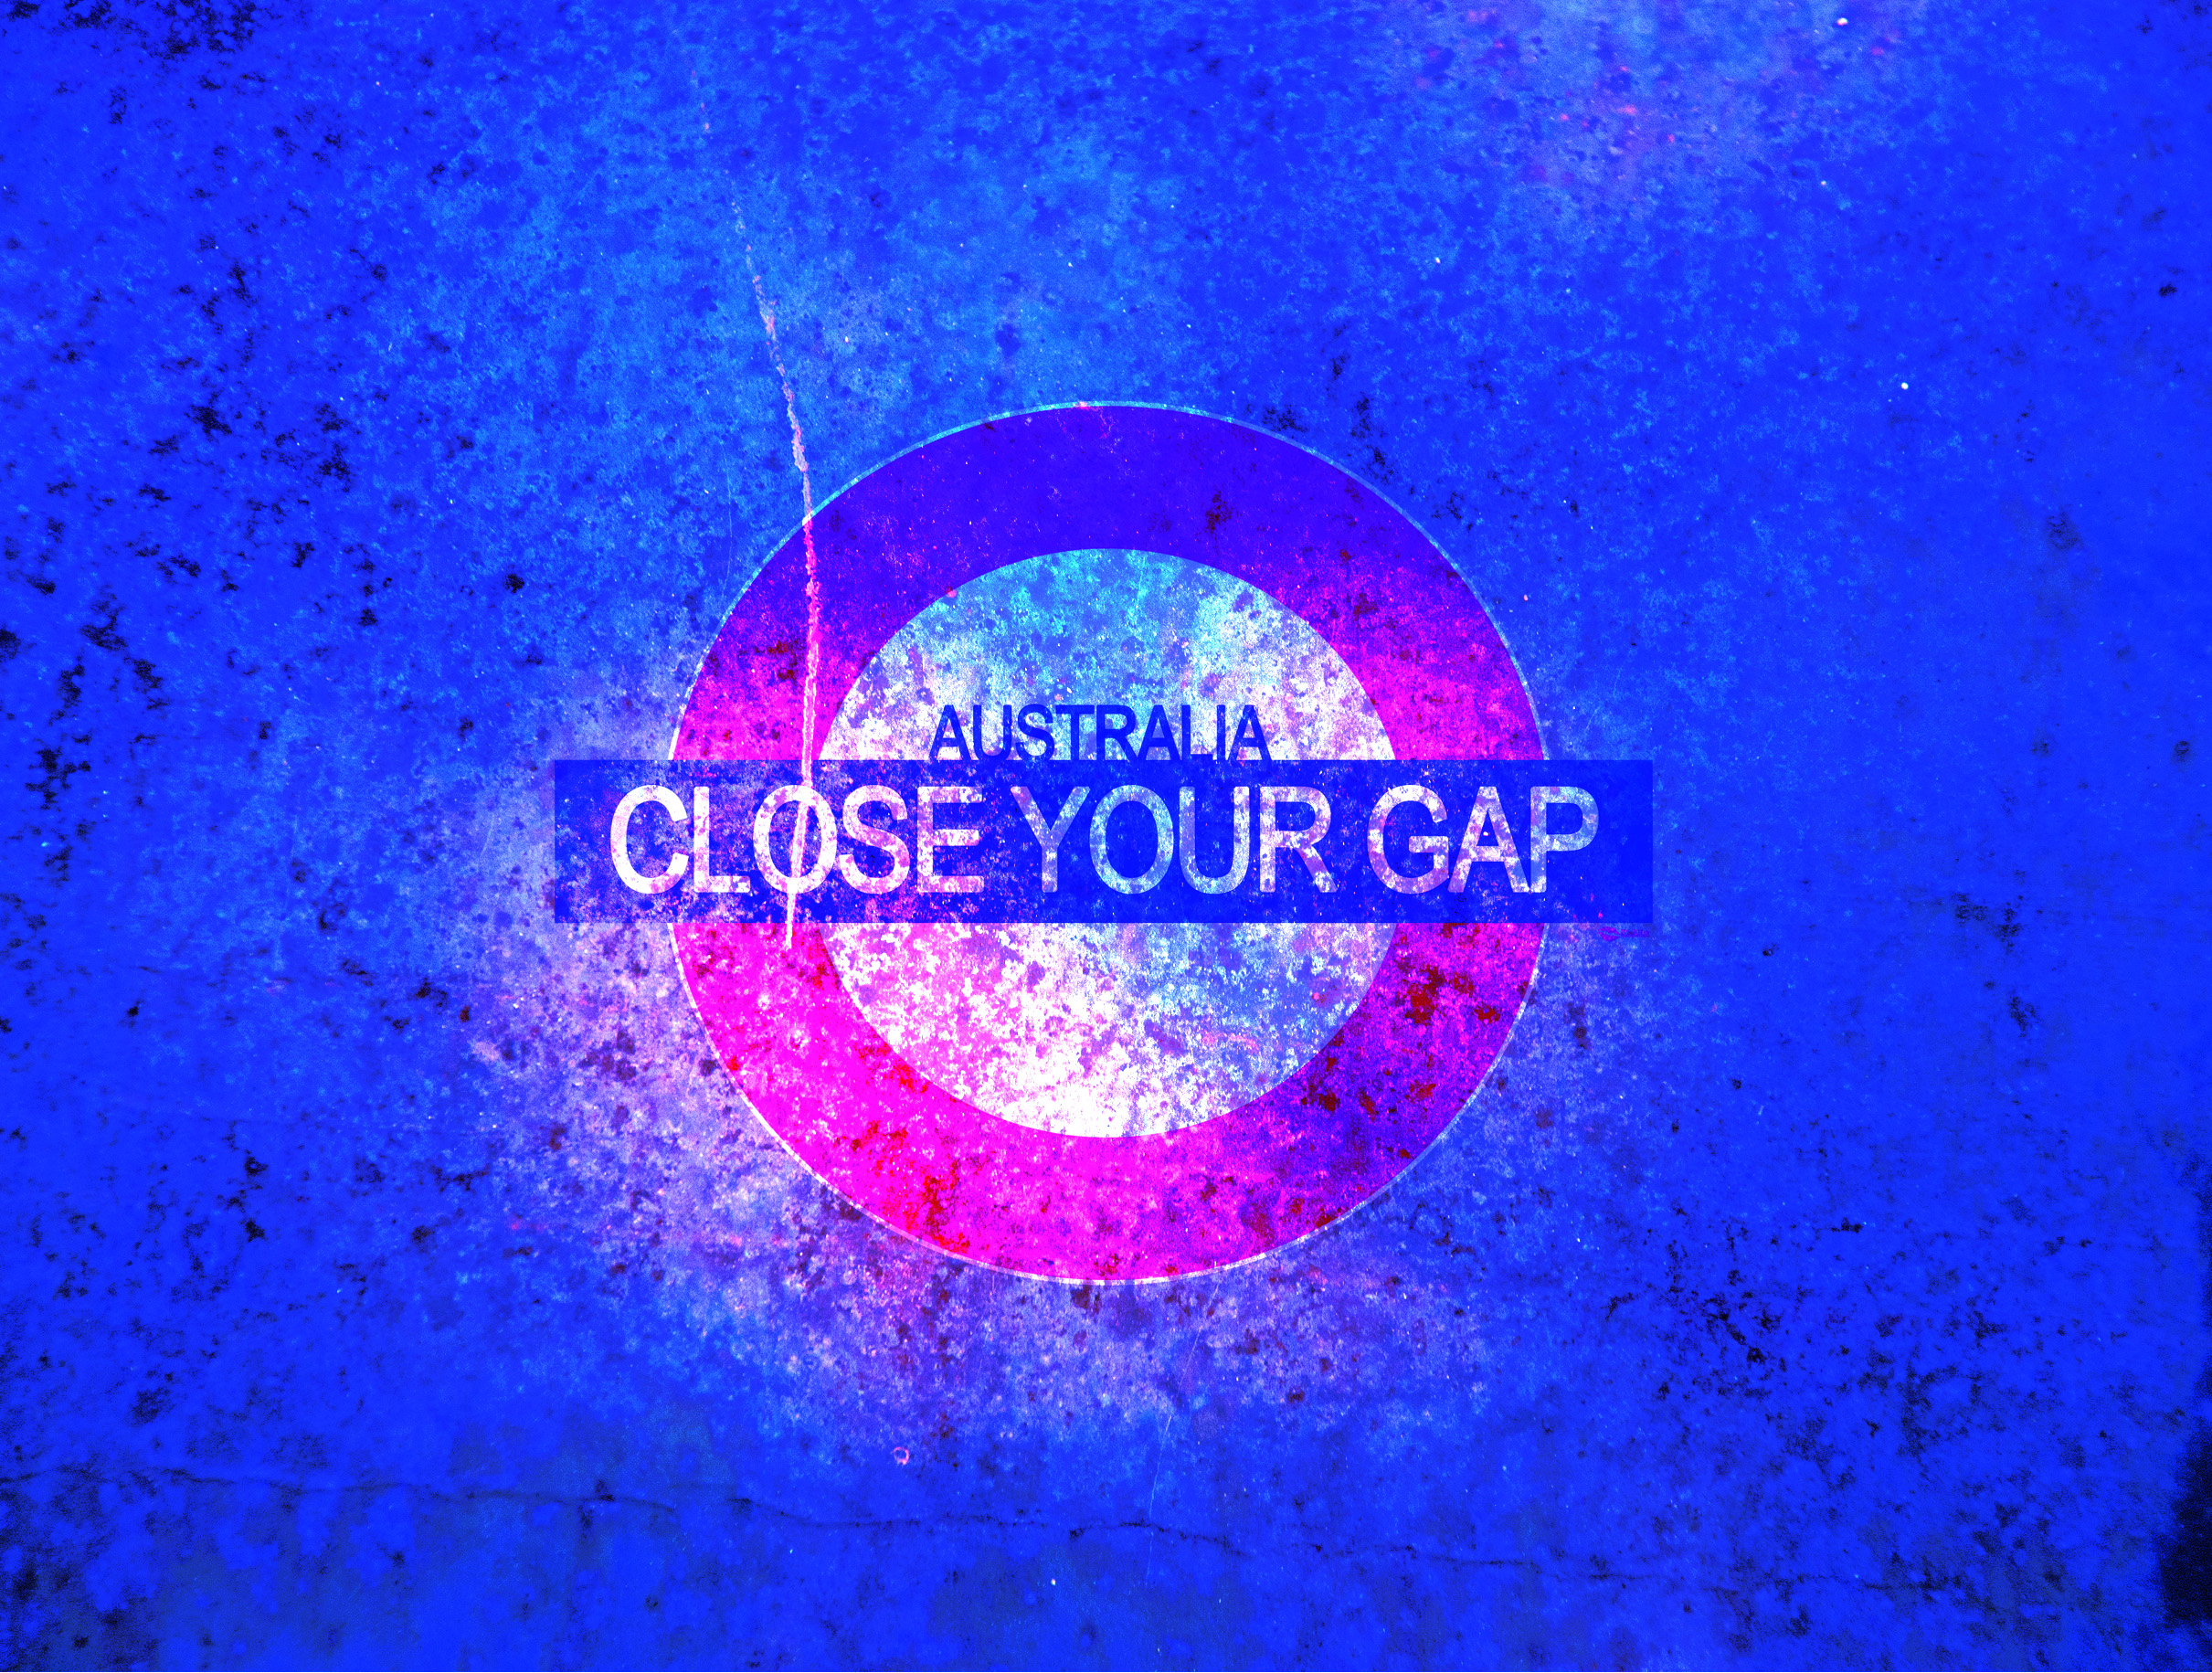 Close your gap